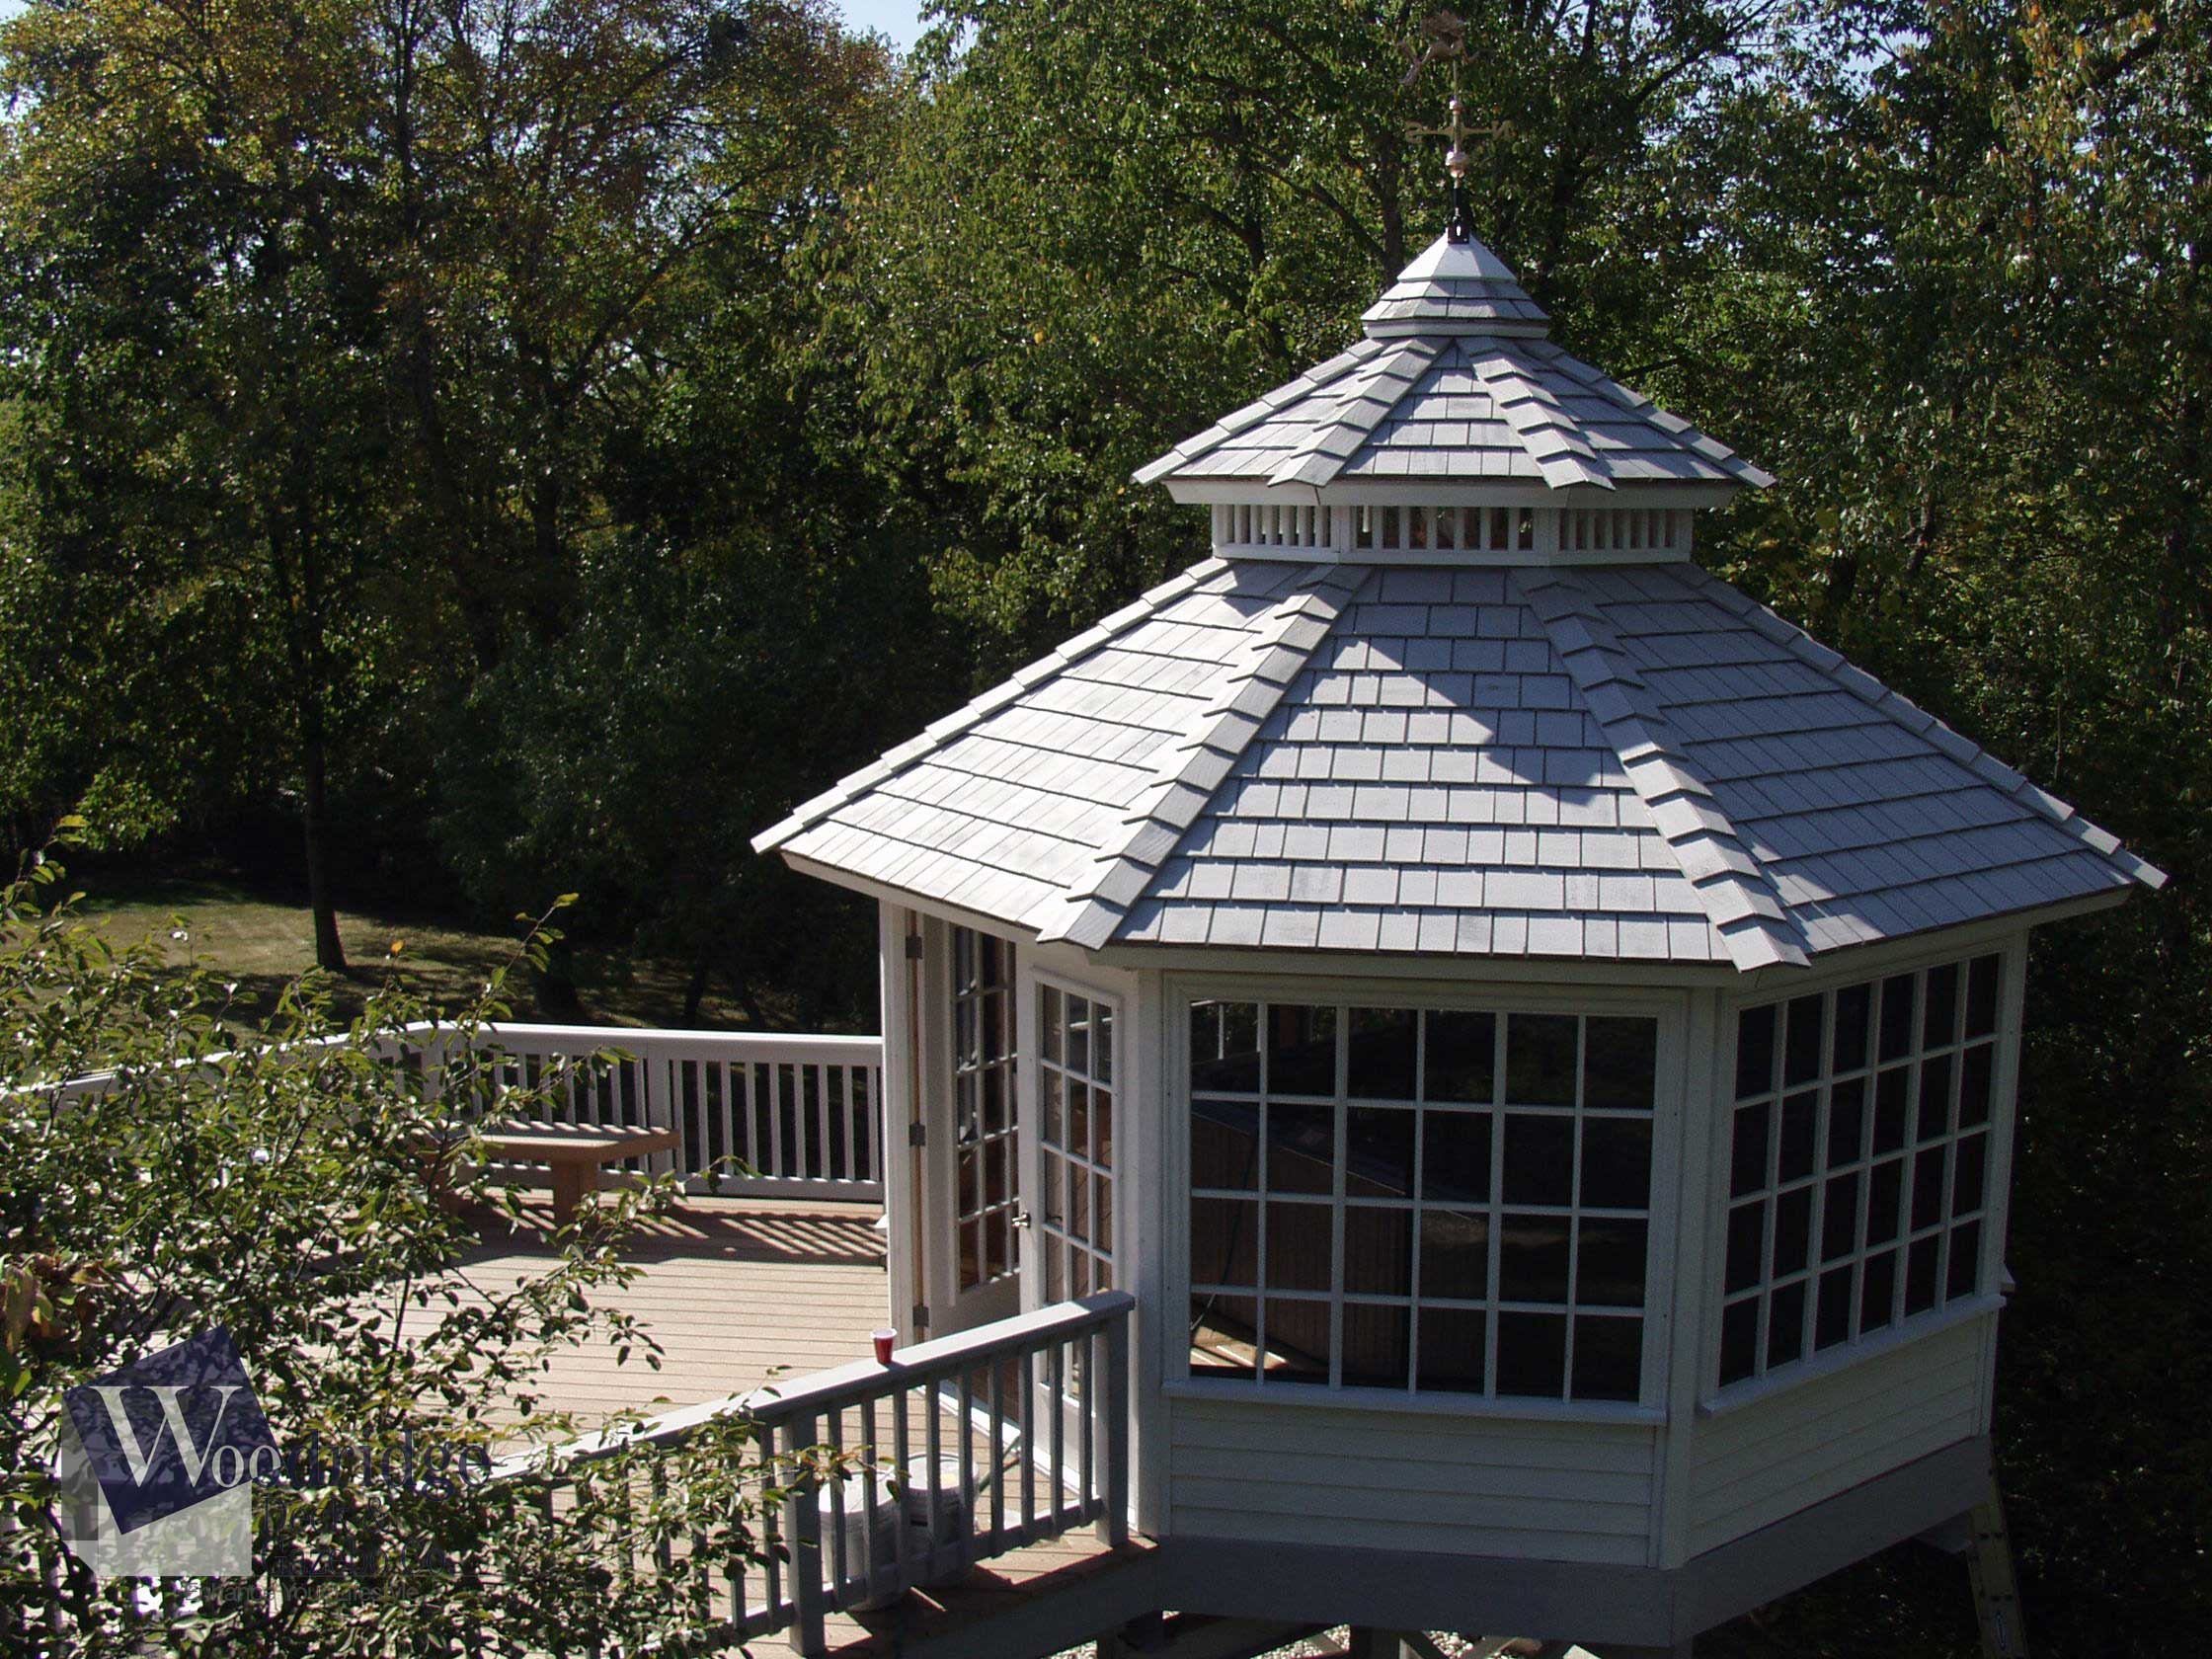 Woodridge Deck and Gazebo Gazebo